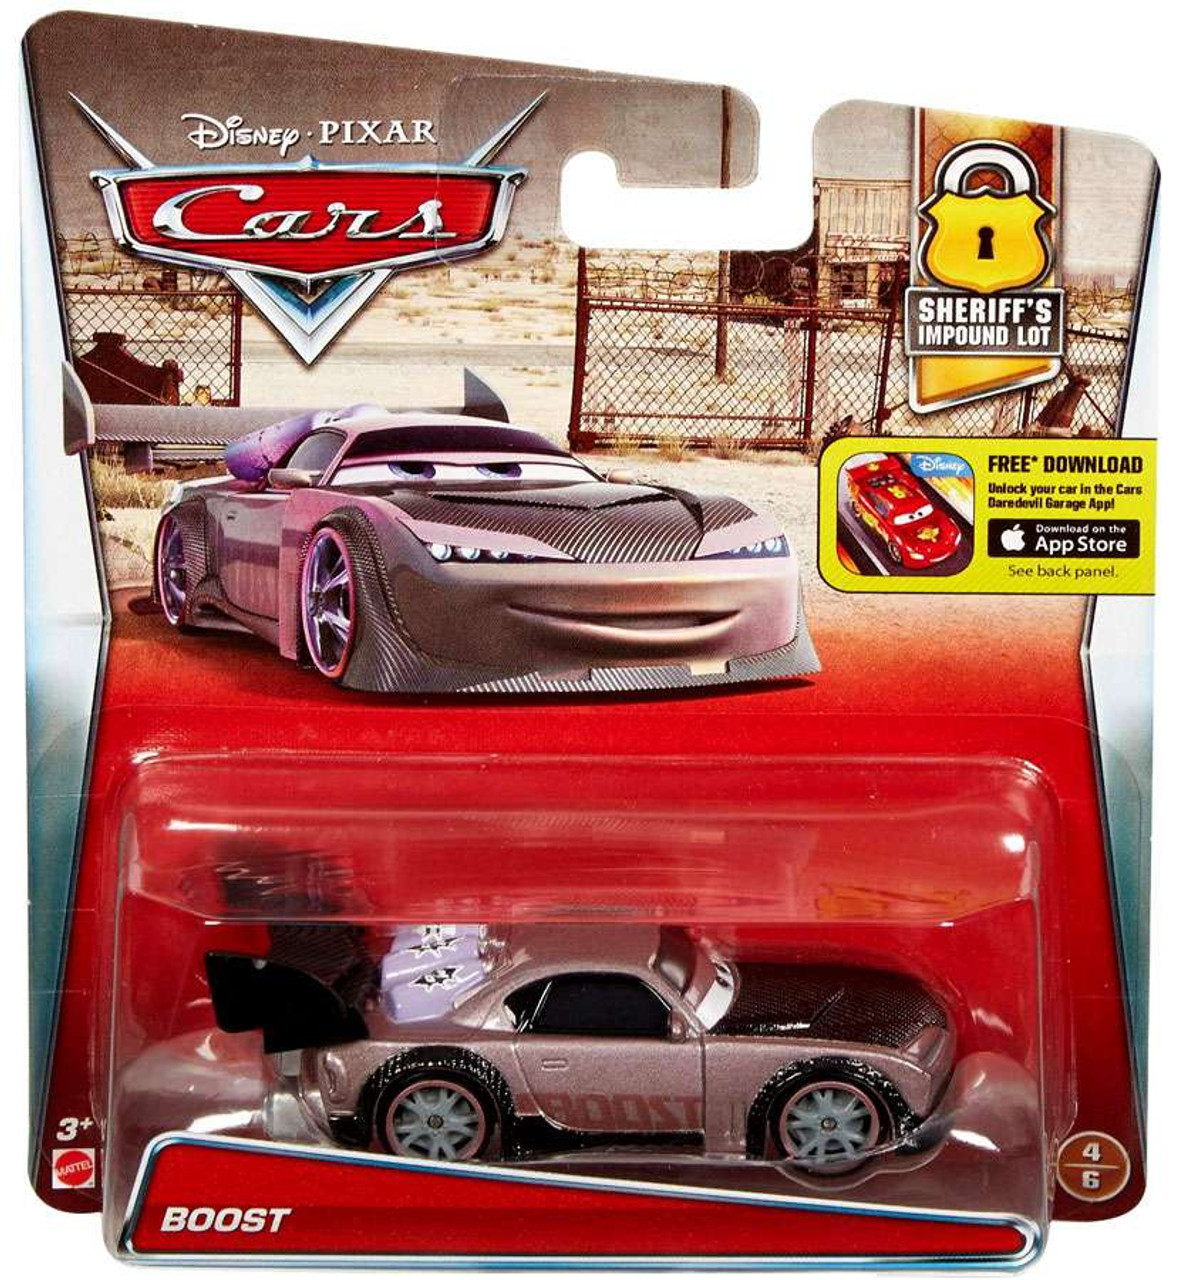 Disney / Pixar Cars Sheriff's Impound Lot Boost Diecast Car #4/6